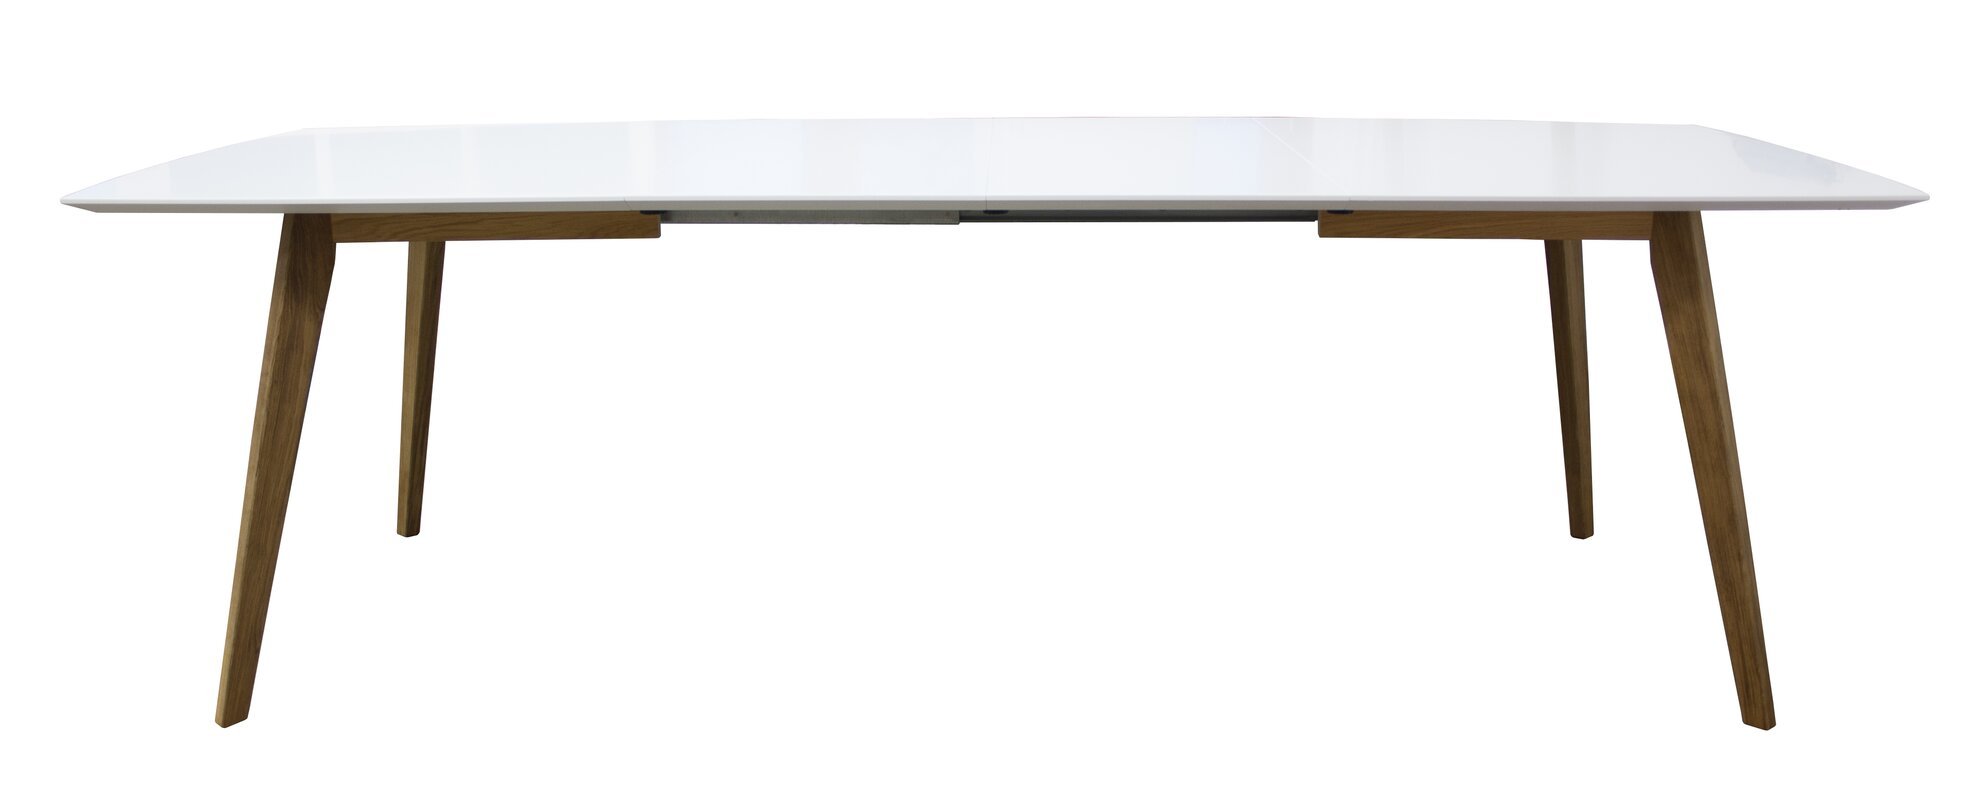 Osaka Wild Oak Dining Table Extension Leaf Dining Table